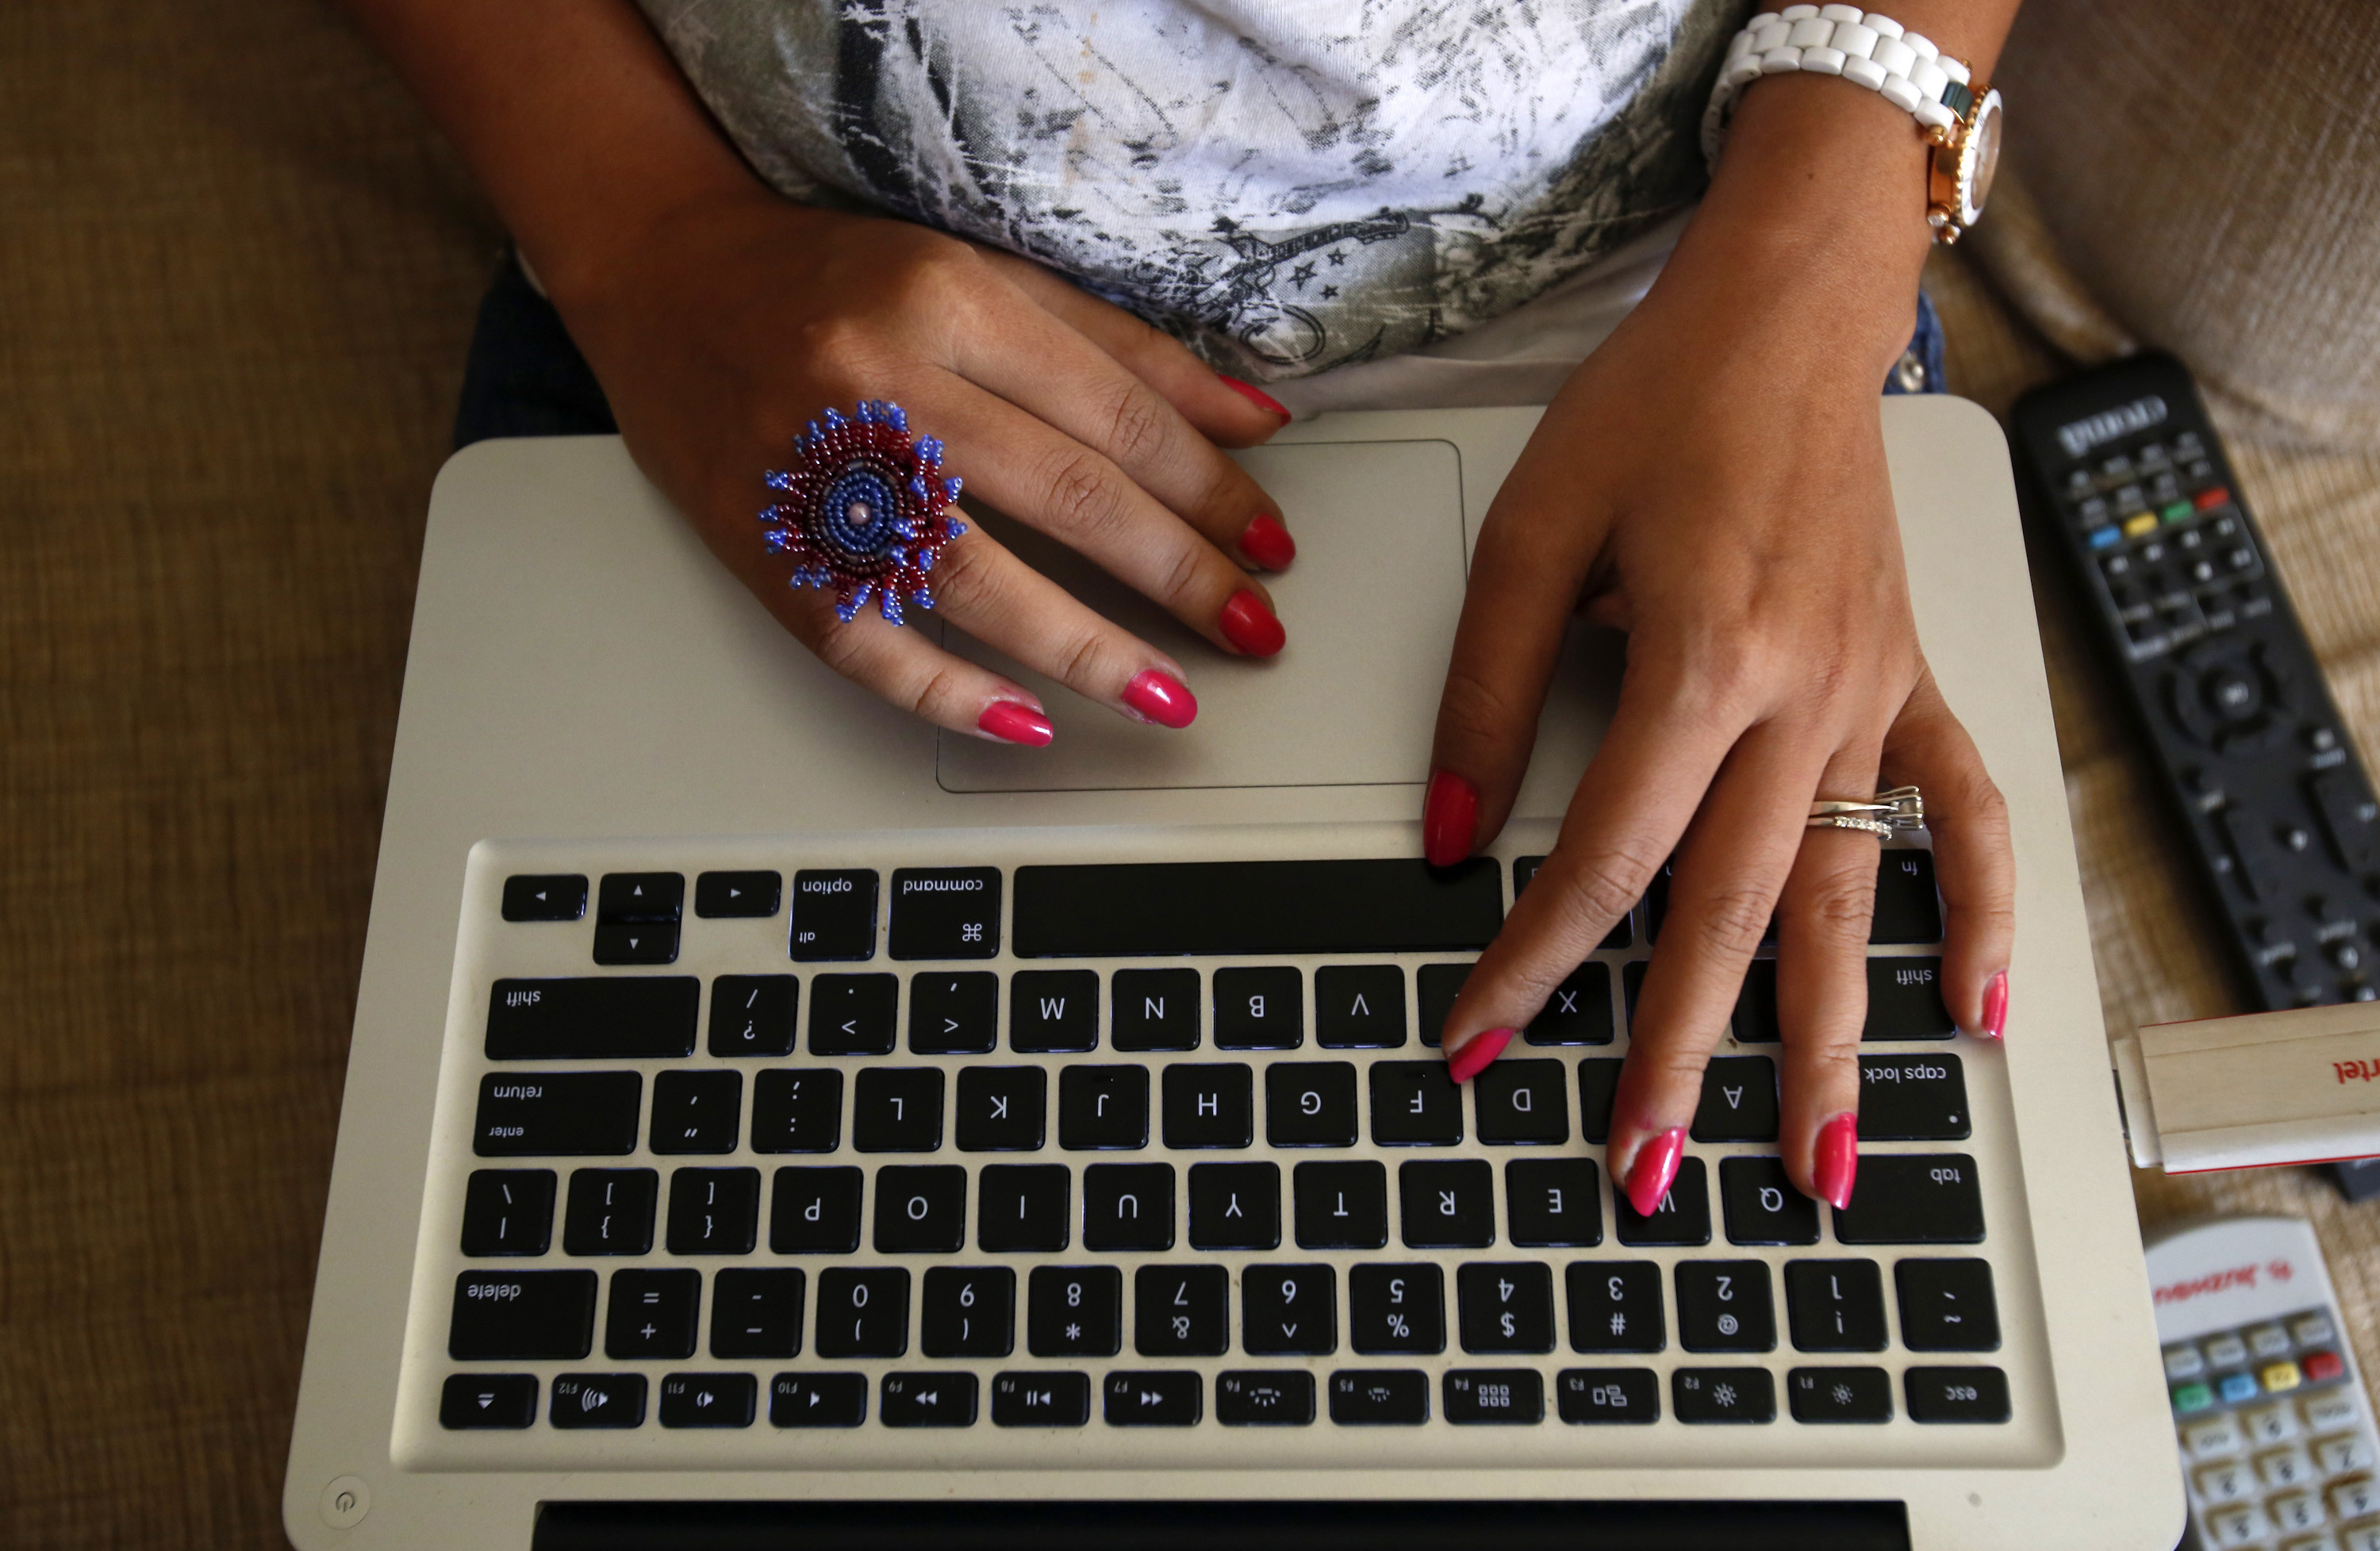 "The hands of Malini Agarwal, blogger-in-chief of missmalini.com, are pictured as she blogs from her living room in Mumbai, January 22, 2013. Agarwal, 35, exemplifies what aspirational India is all about - She's bubbly, energetic, and describes herself as ""India's blogging princess"" and a ""social media Jedi"". She's been called ""without a doubt, India's most famous blogger"". Her blog, missmalini.com, gets over 250,000 unique visitors a month. It provides a steady diet of Bollywood gossip, fashion, food and entertainment to a legion of followers. REUTERS/Vivek Prakash (INDIA) - LM2E92B13VR01"